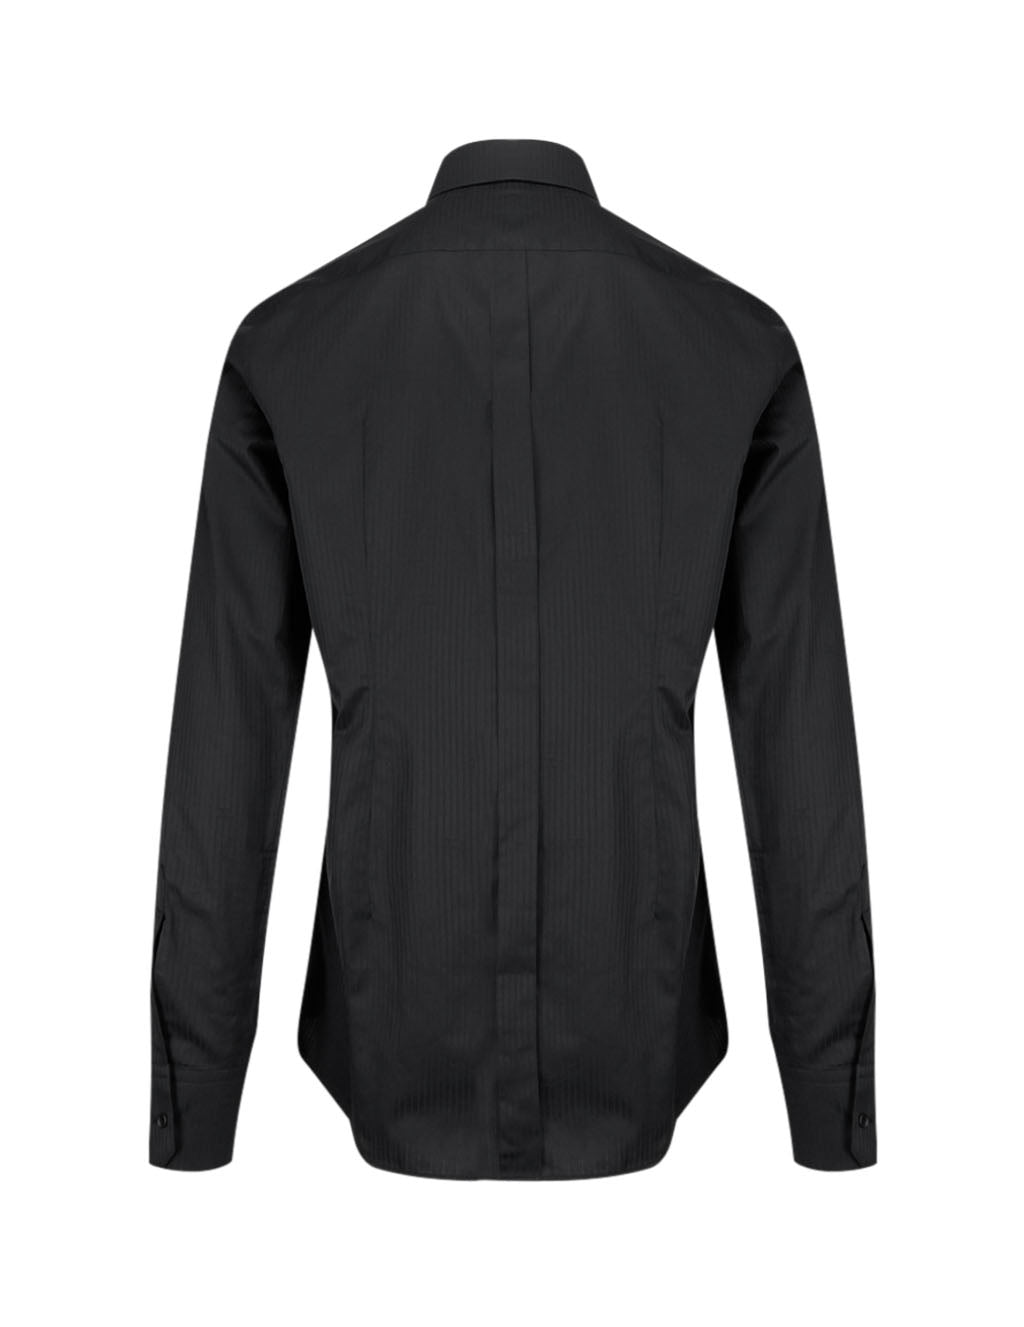 Dolce&Gabbana Men's Giulio Fashion Black Tailored Shirt G5EJ0TFR5XZN0000